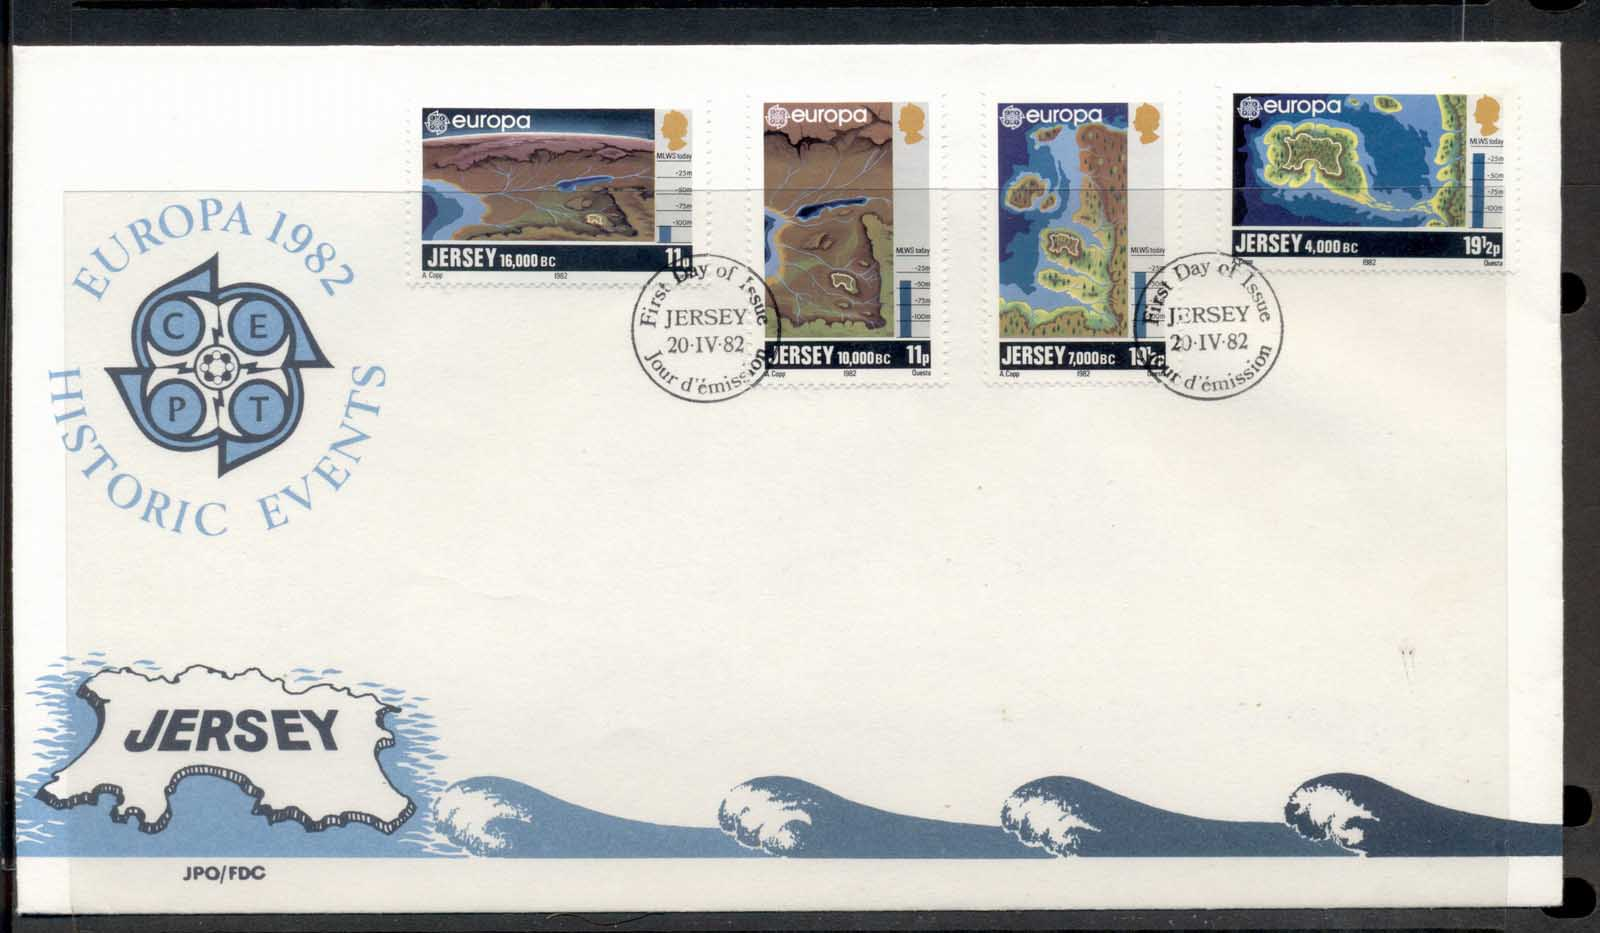 Jersey 1982 Europa History FDC